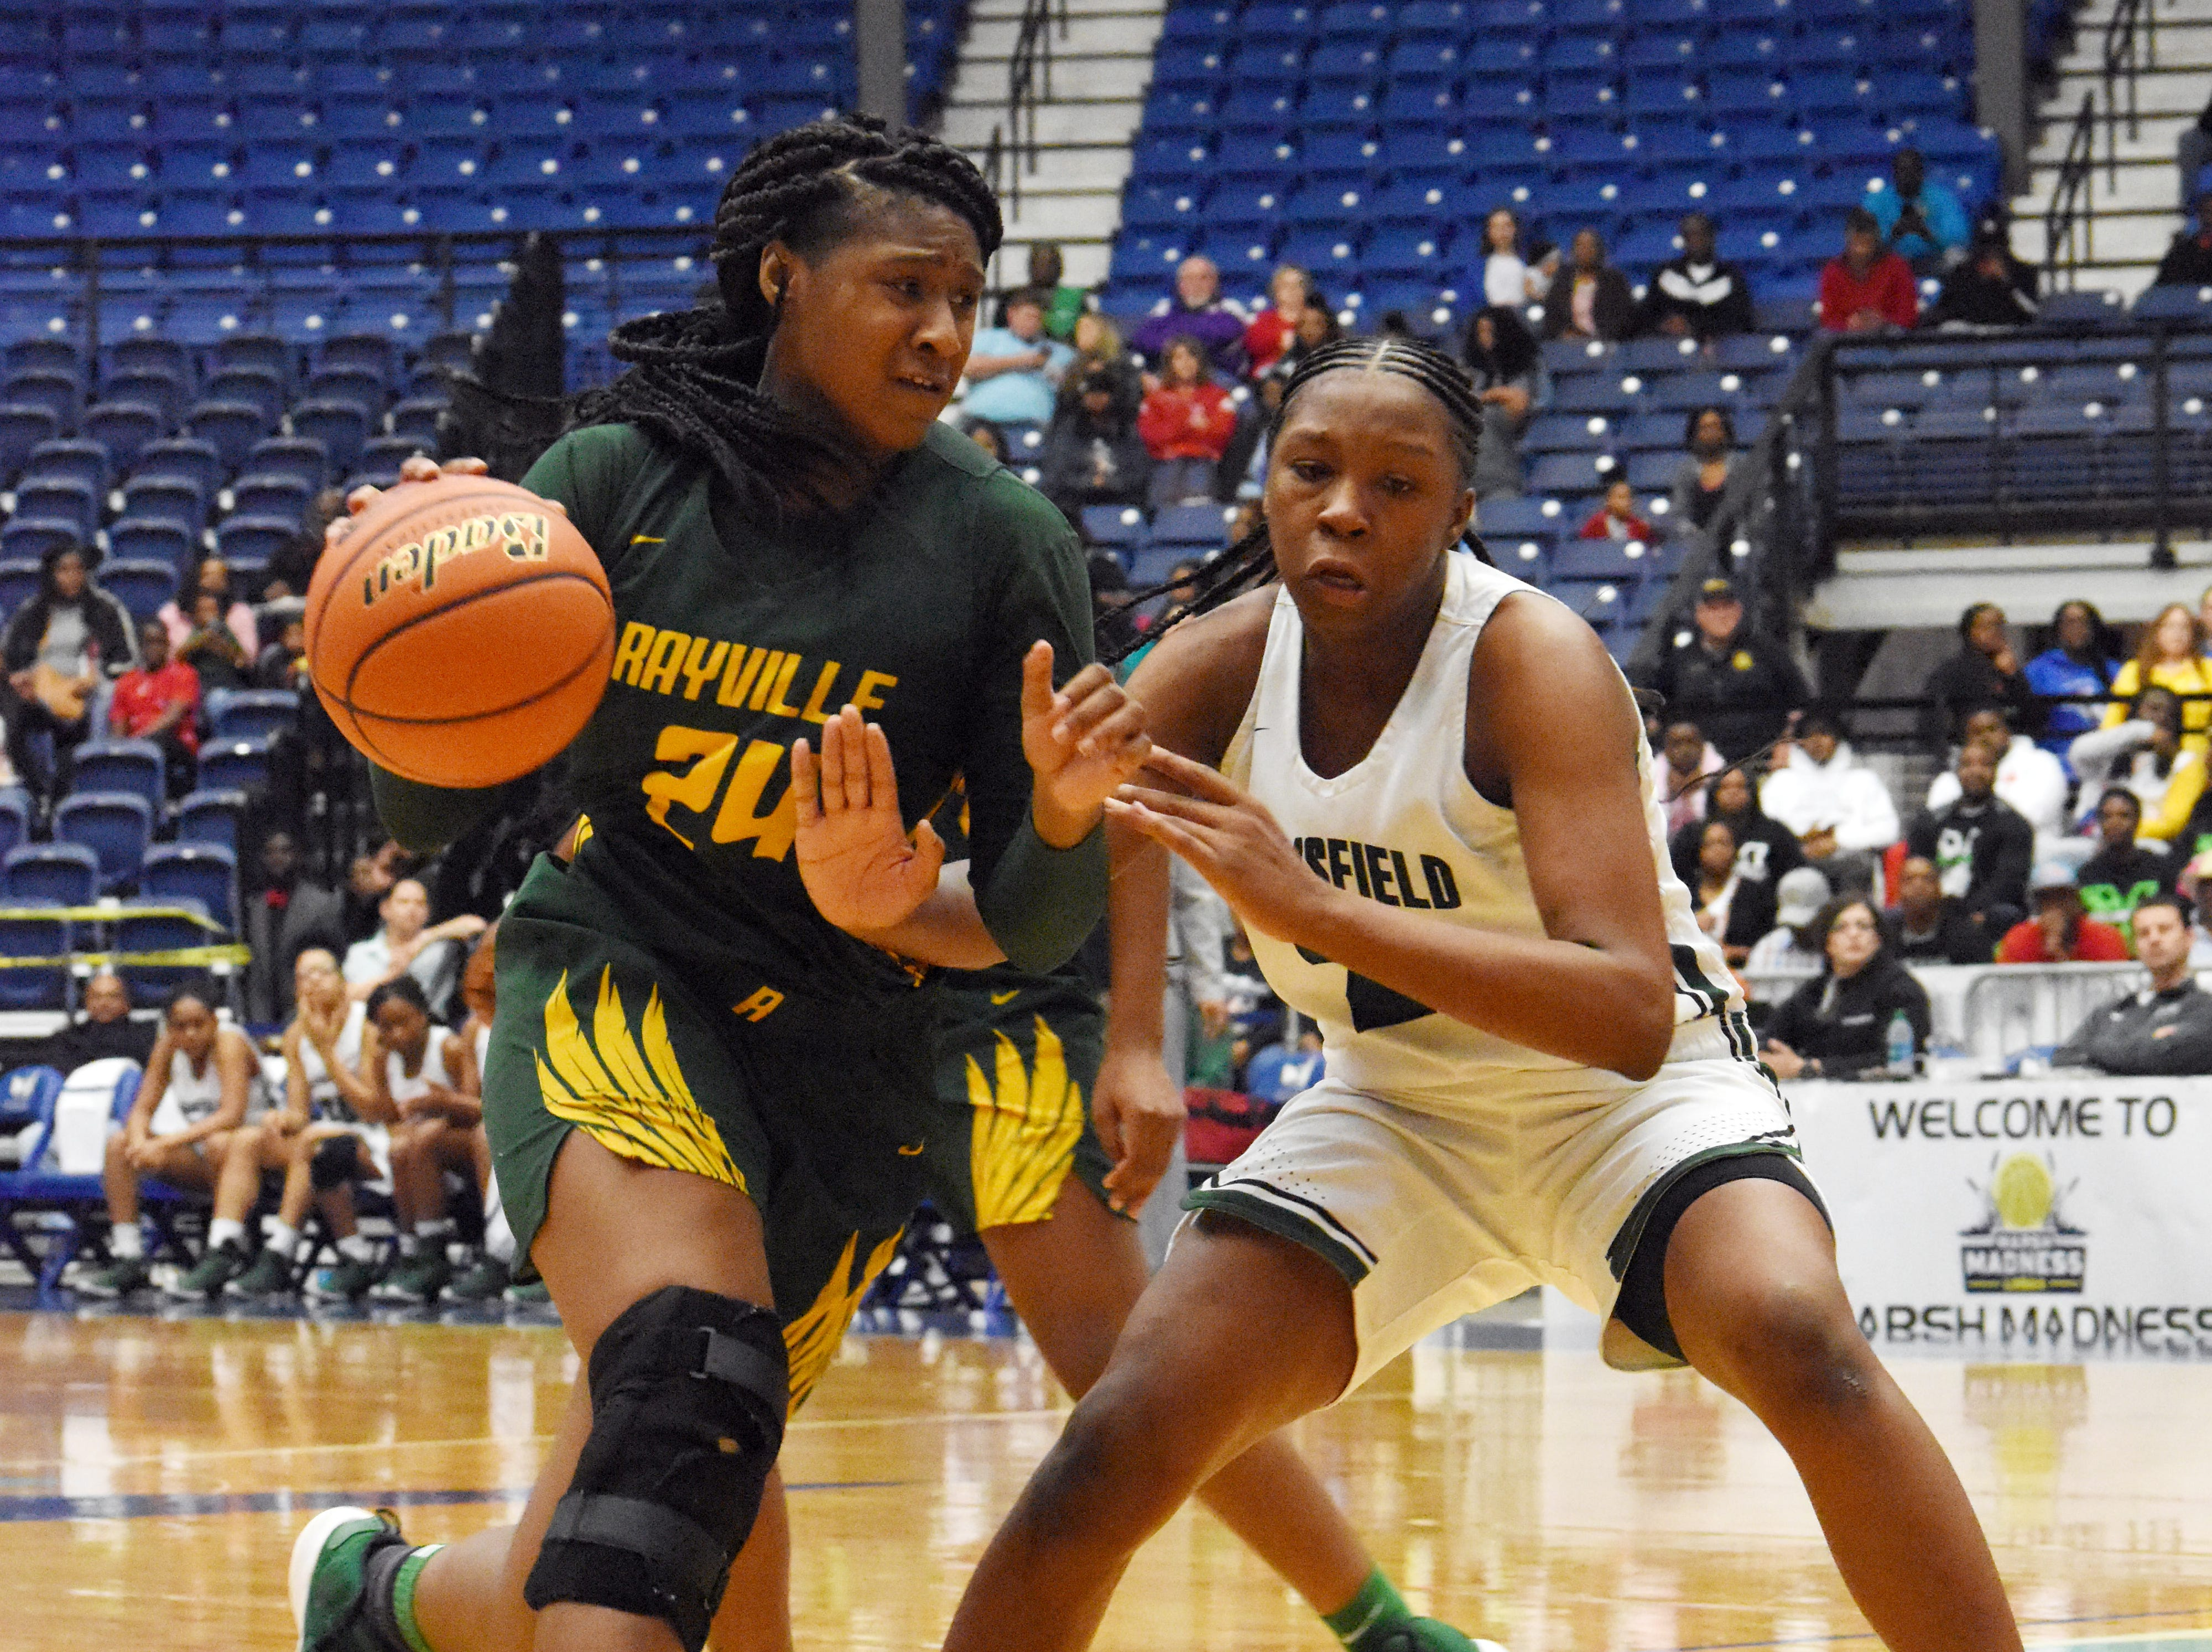 Mansfield High School vs. Rayville High School in the Class 2A semifinal game of the 2019 Allstate Sugar Bowl 2019 Louisiana High School Athletic Association Girl's State Basketball Marsh Madness held Thursday, Feb. 28, 2019 at the Rapides Parish Coliseum in Alexandria. Mansfield won 57-49.